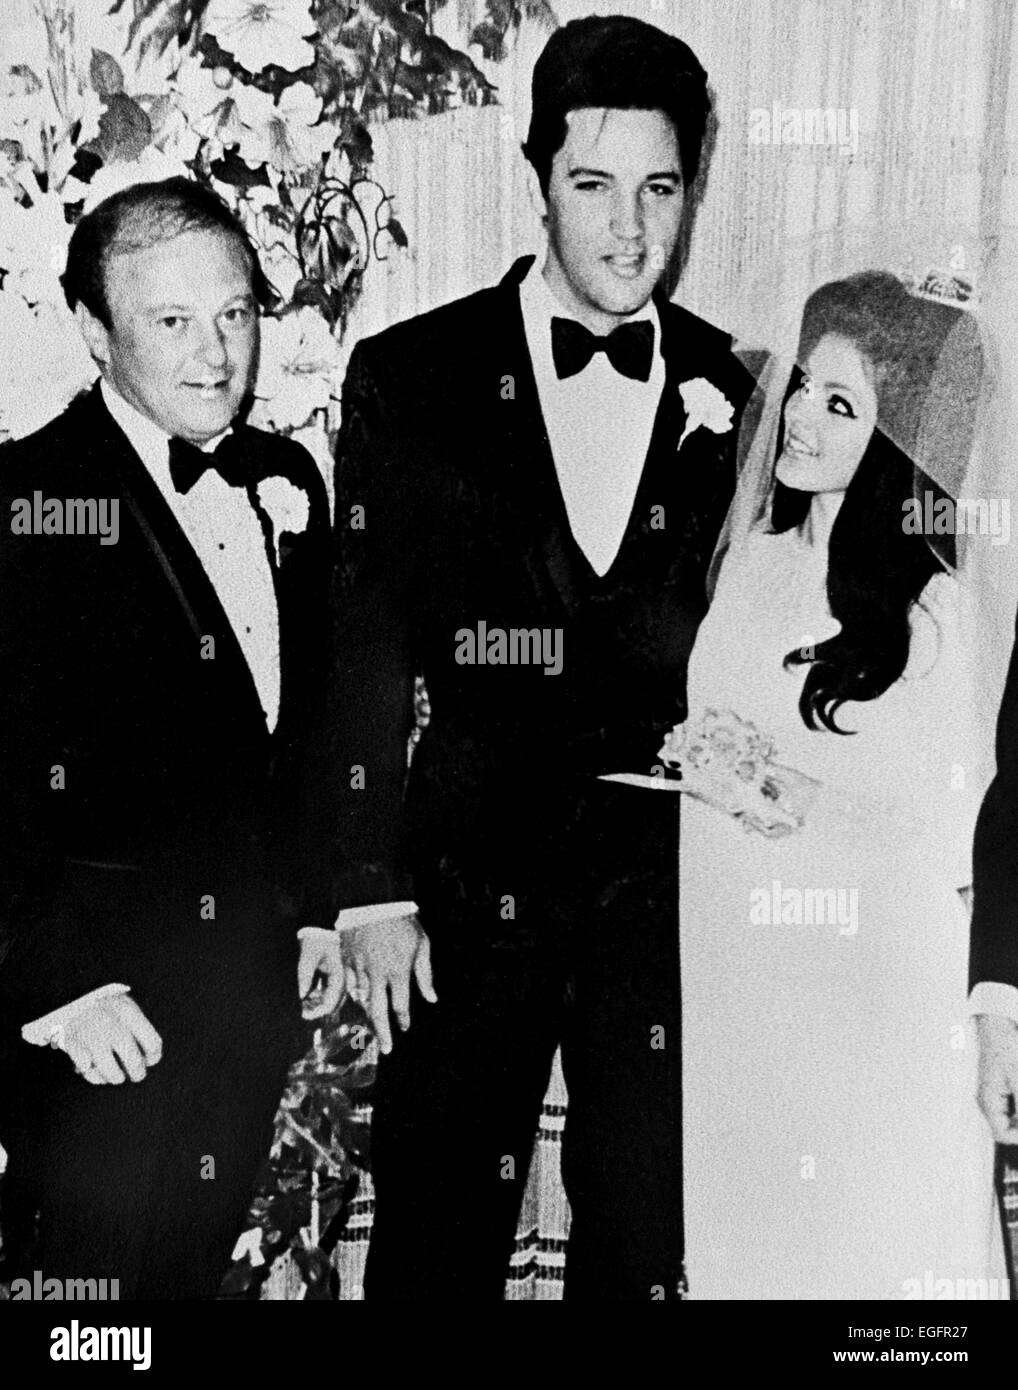 LAS VEGAS, NV - NOVEMBER 10 – Elvis and Priscilla Presley Wedding at the Aladdin Hotel, Las Vegas, Nevada, on November Stock Photo